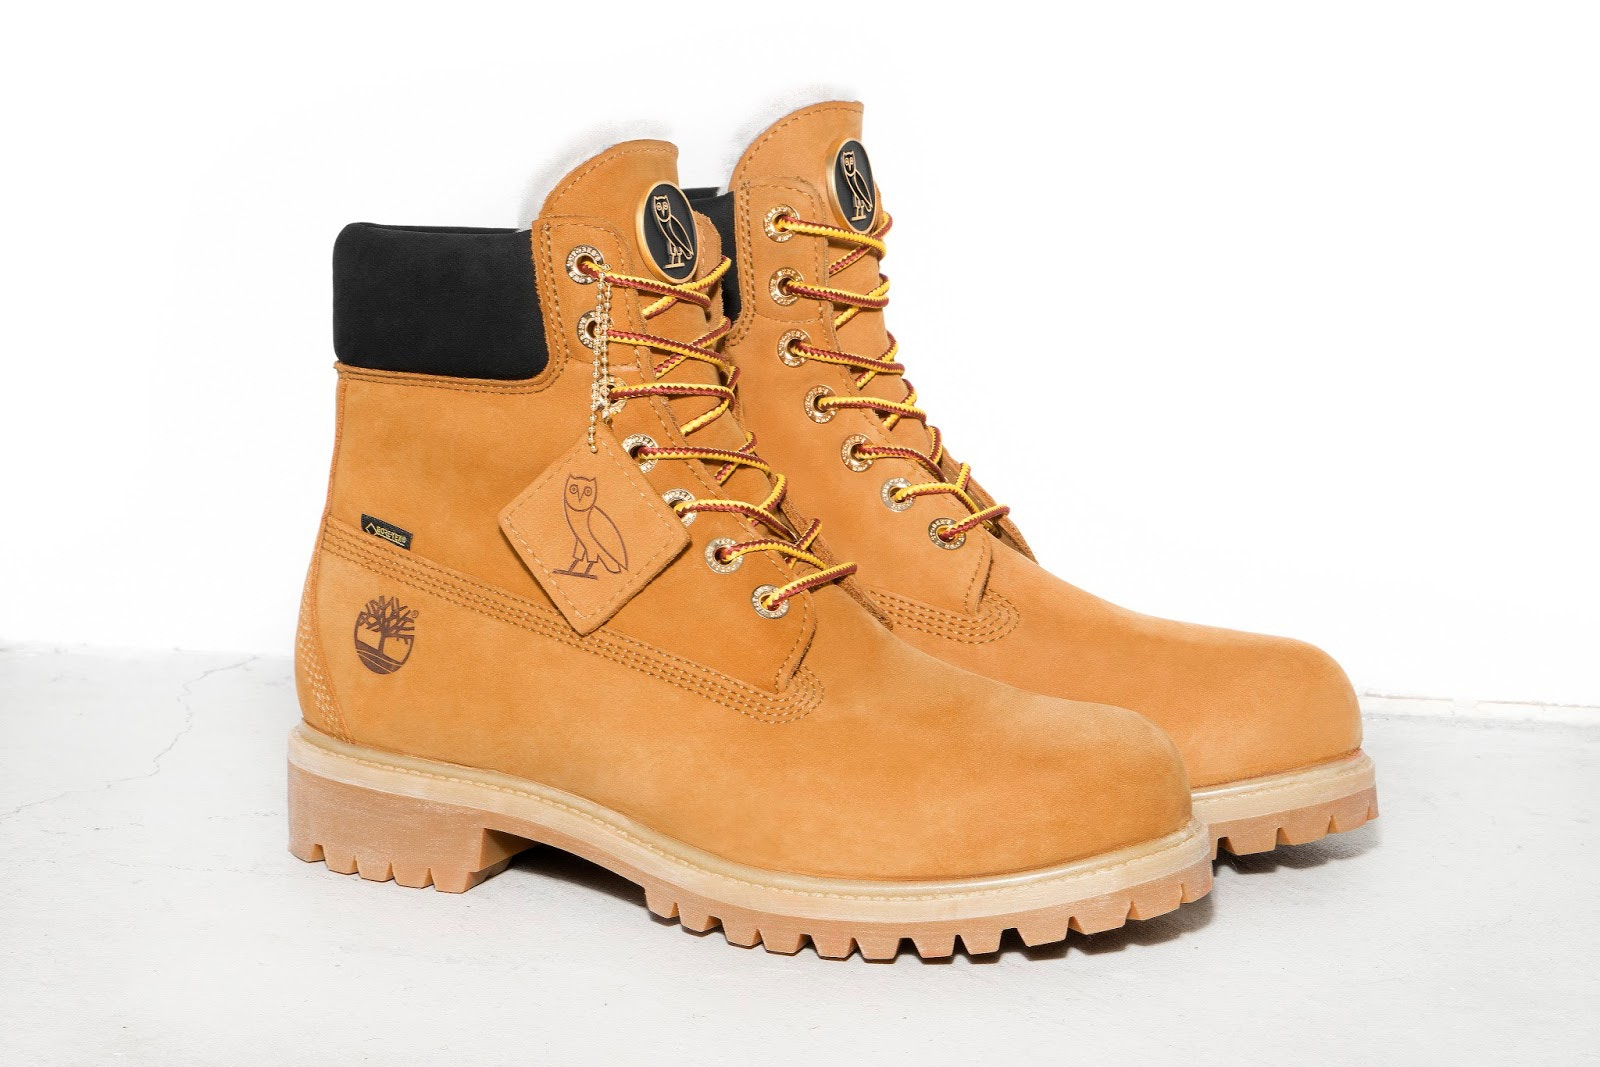 Where And When To Buy The OVO X Timberland 6-Inch Boots